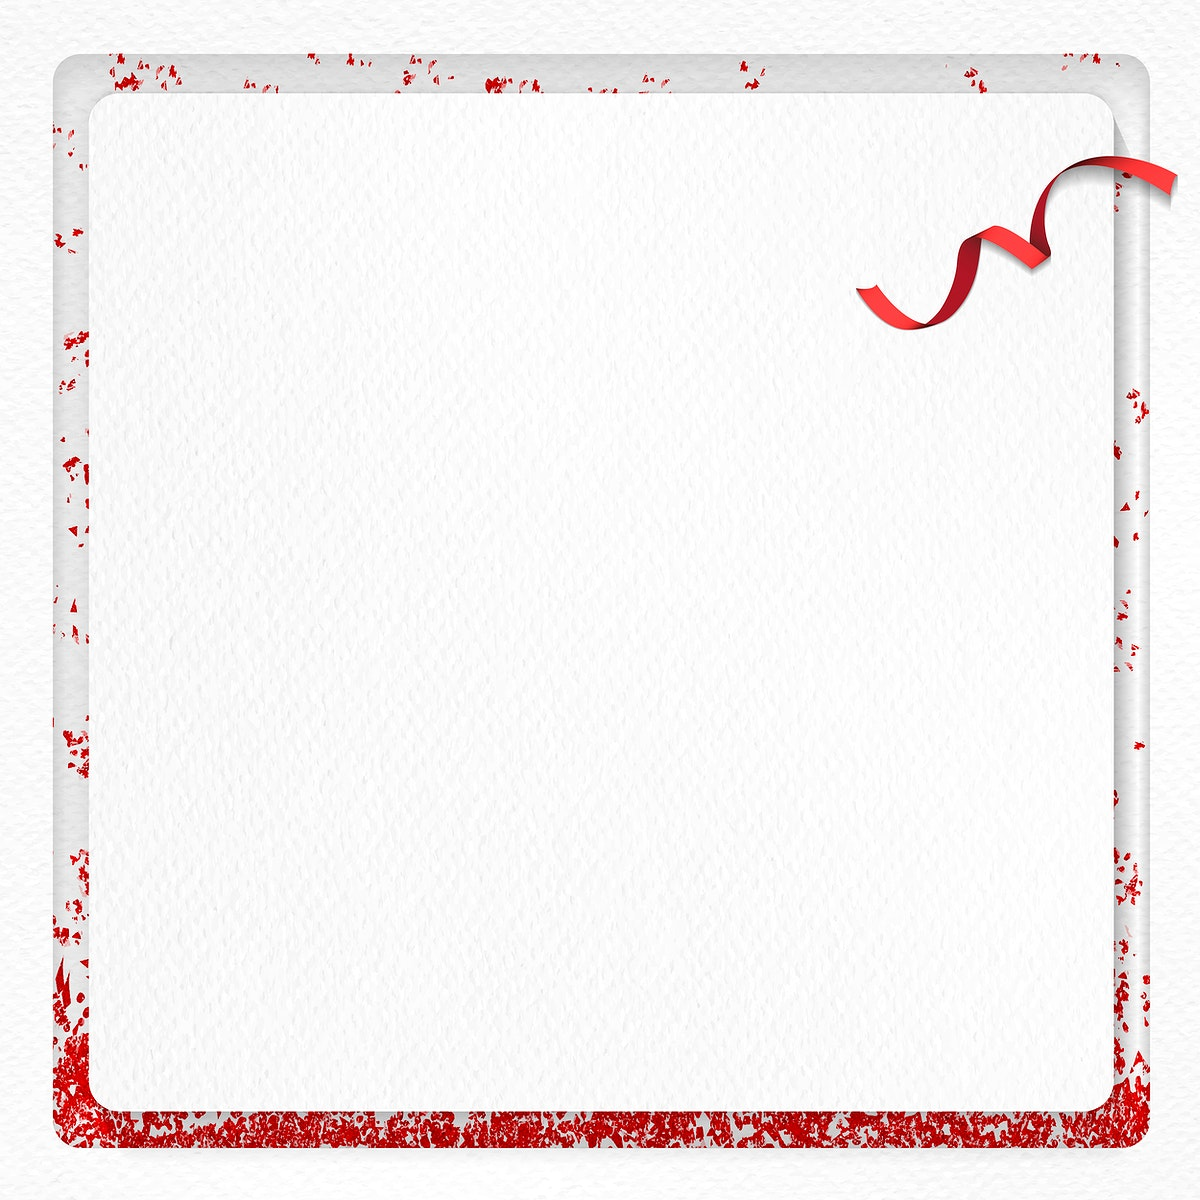 Christmas paper greeting card design with red glitter frame vector